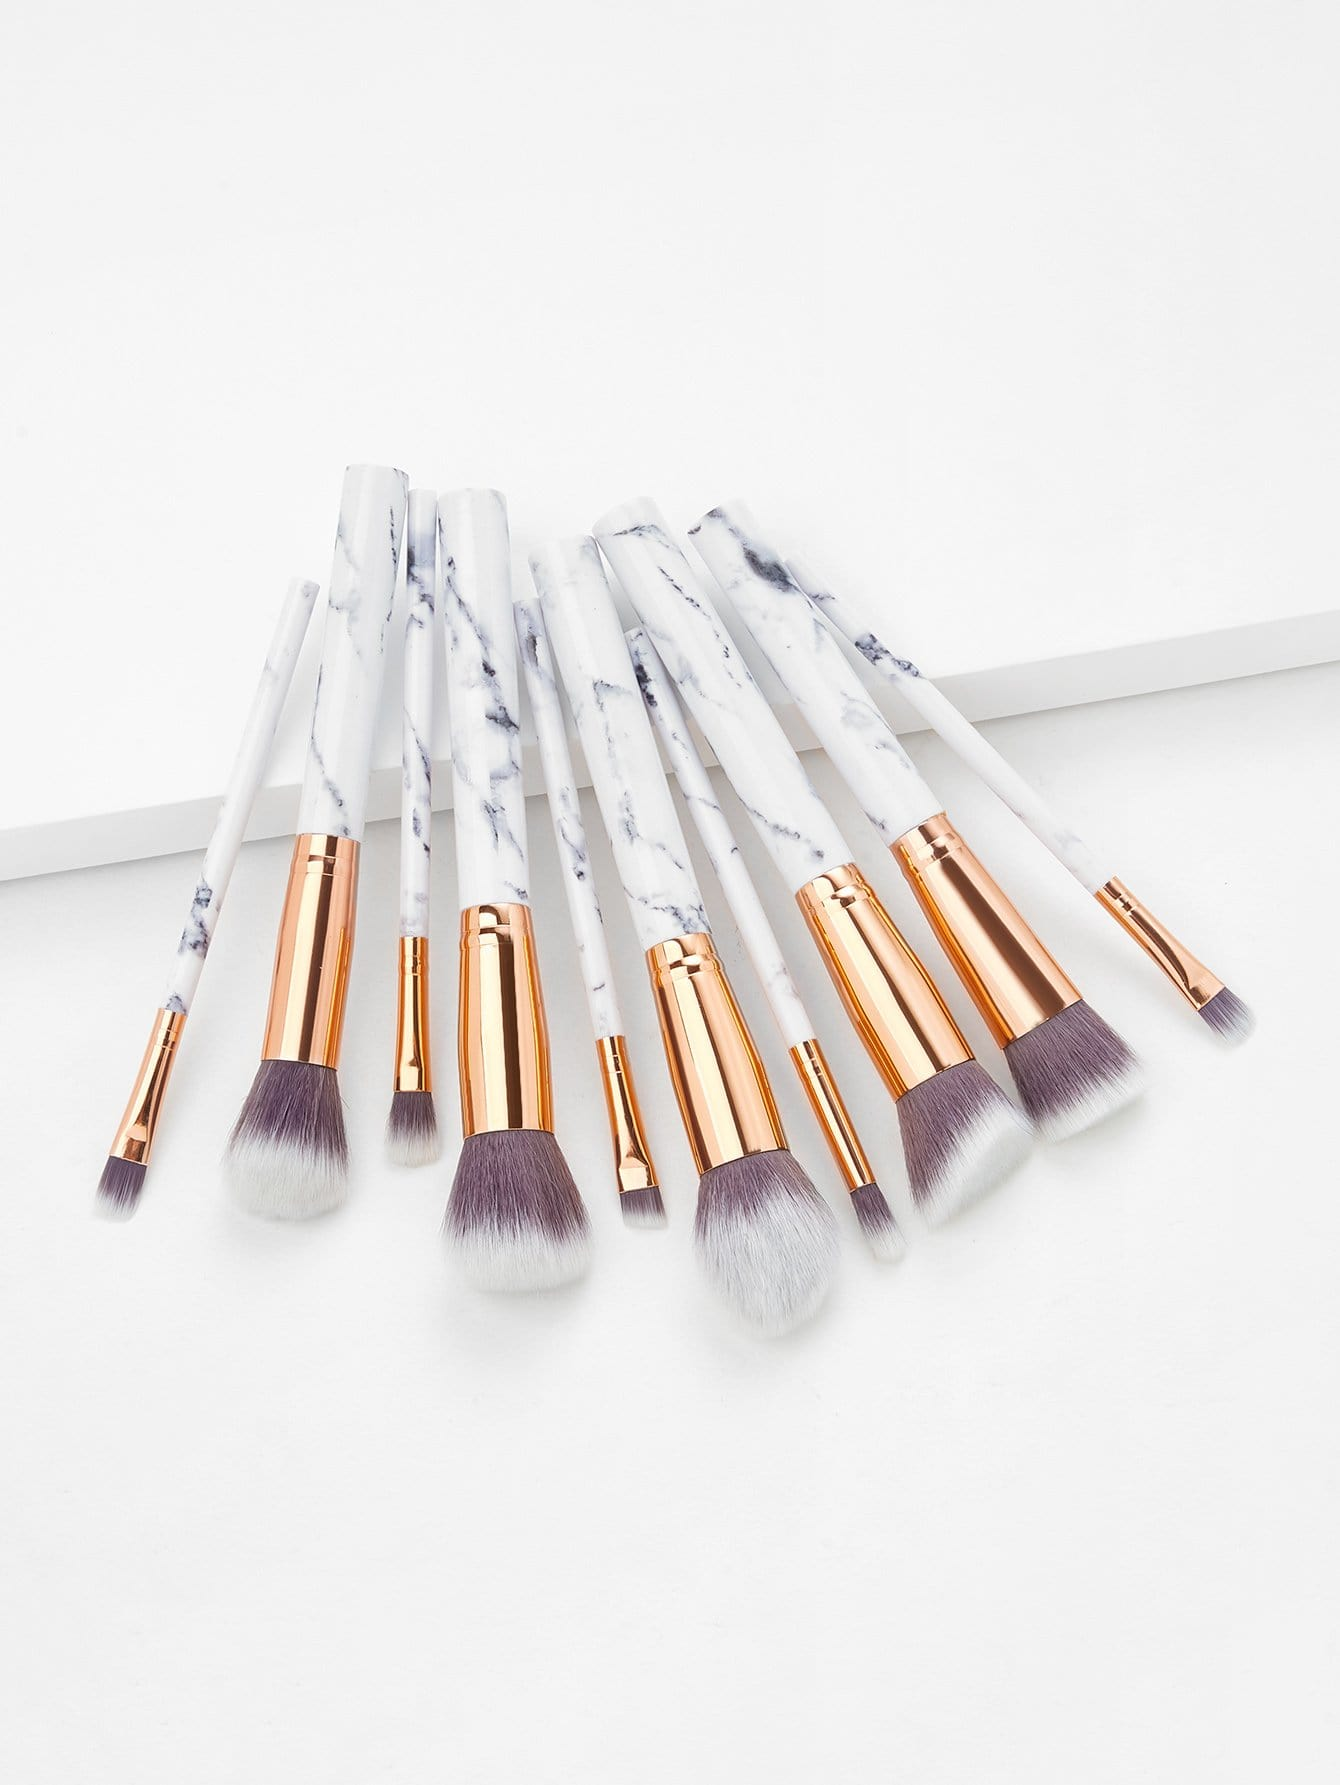 Marble Handle Makeup Brush 10pcs With Bag roller brush with handle